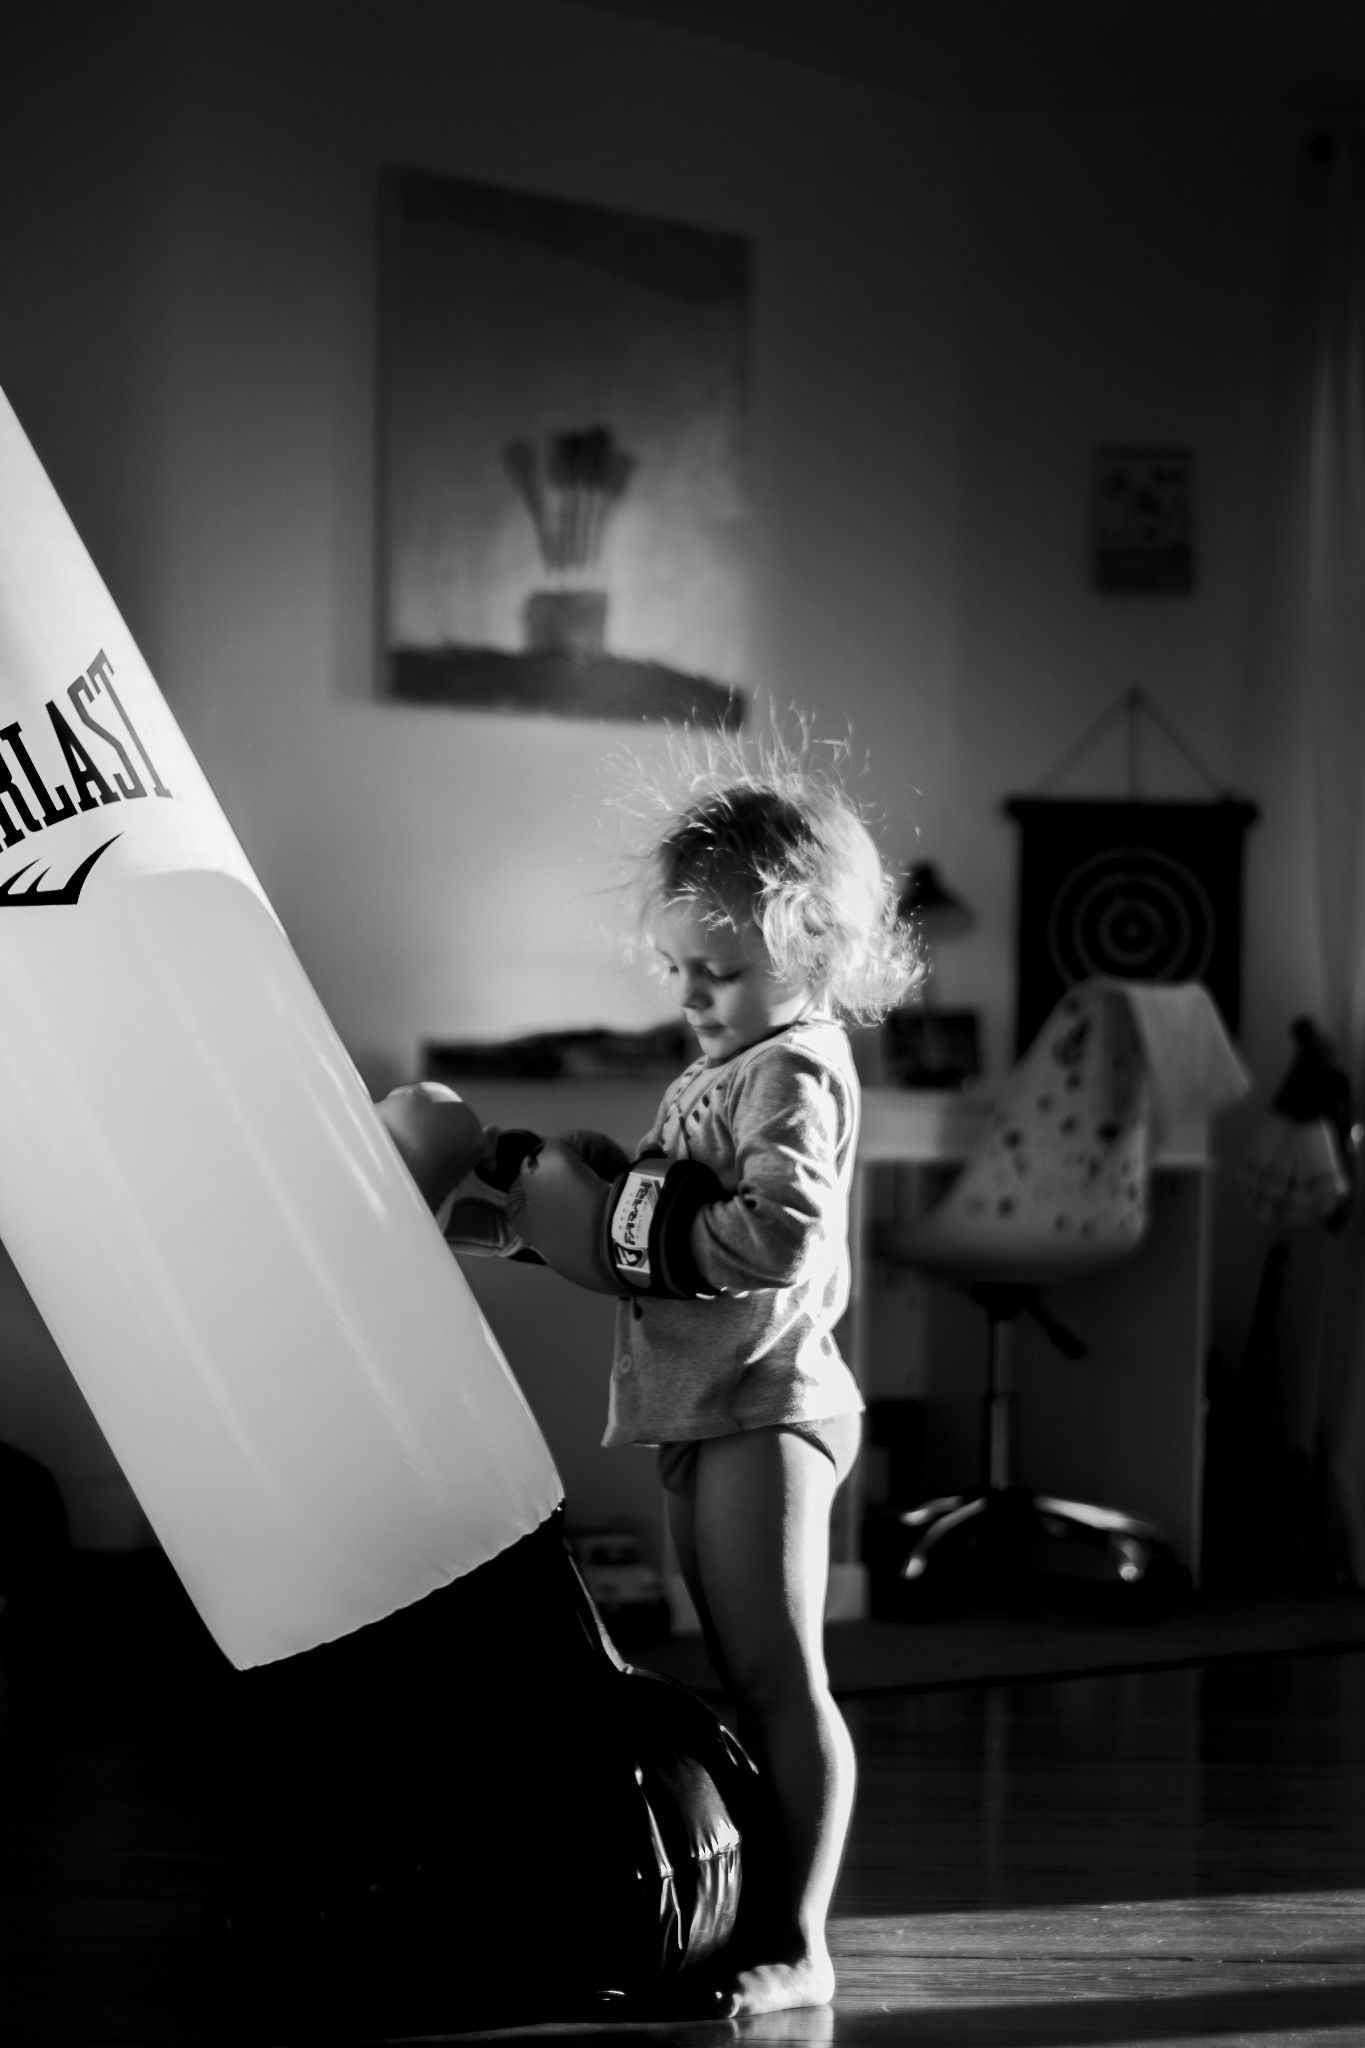 Preparing for the big fight. by Joni El on 500px